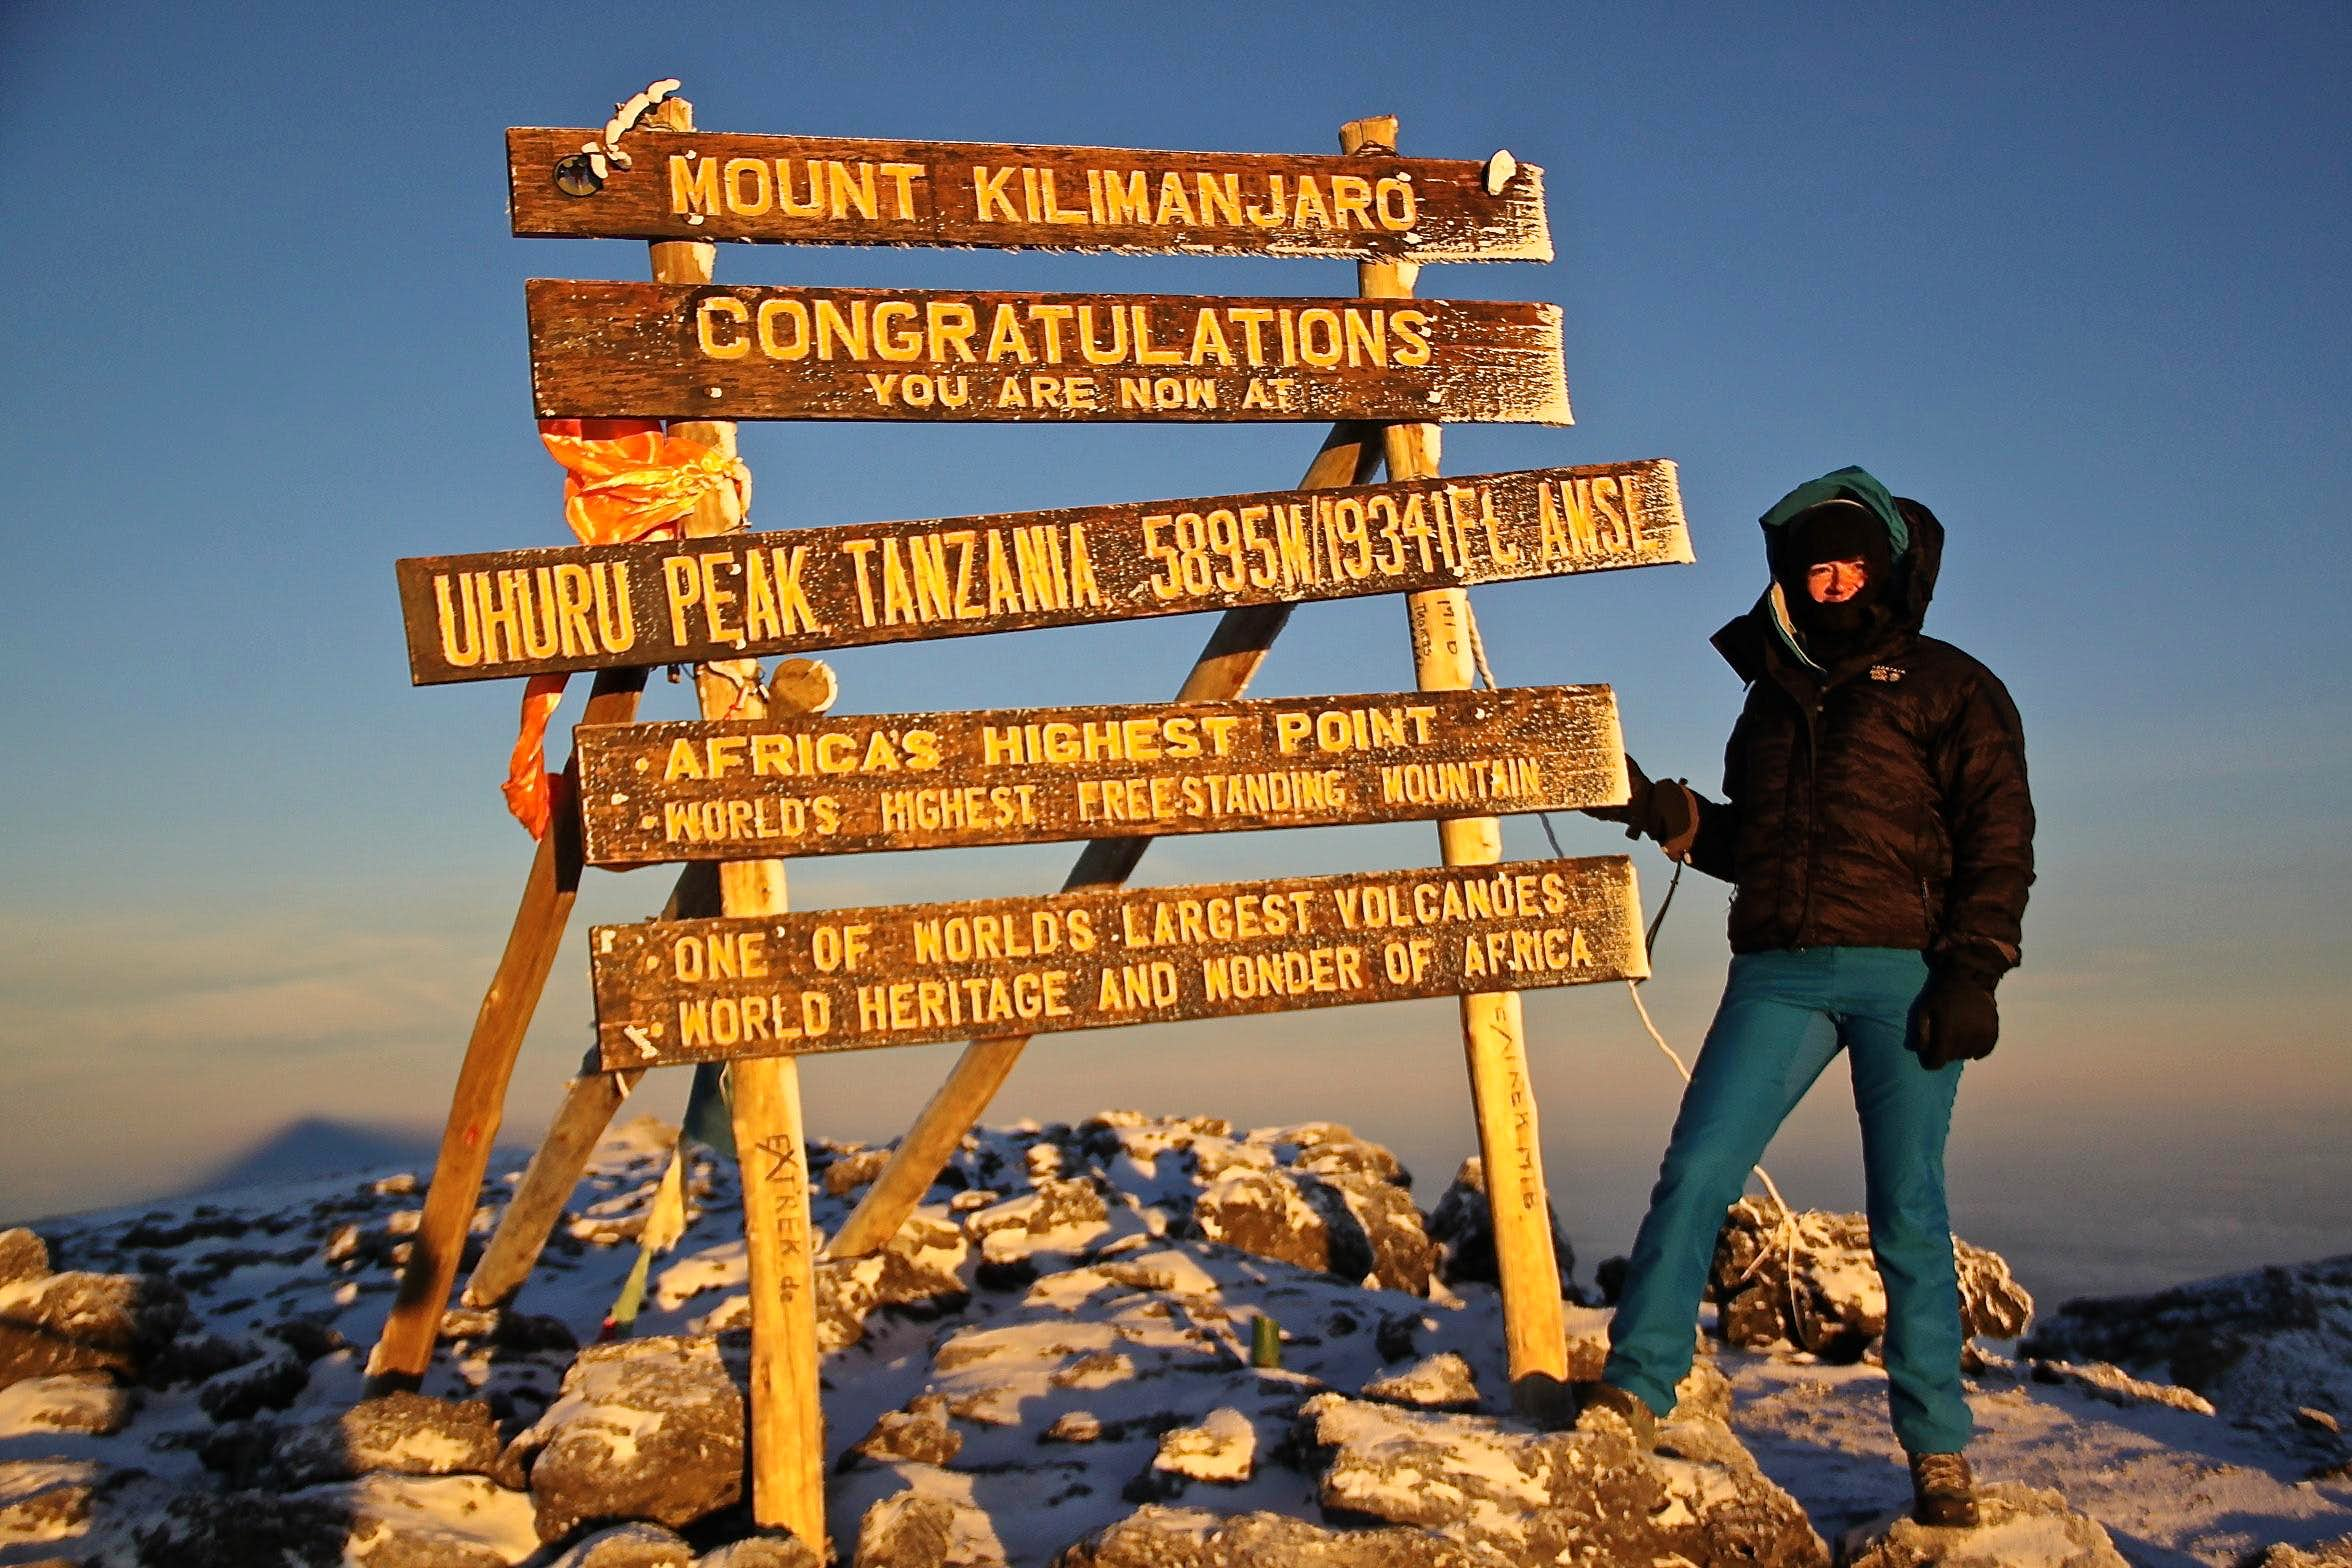 Pole, Pole up to the top of Africa